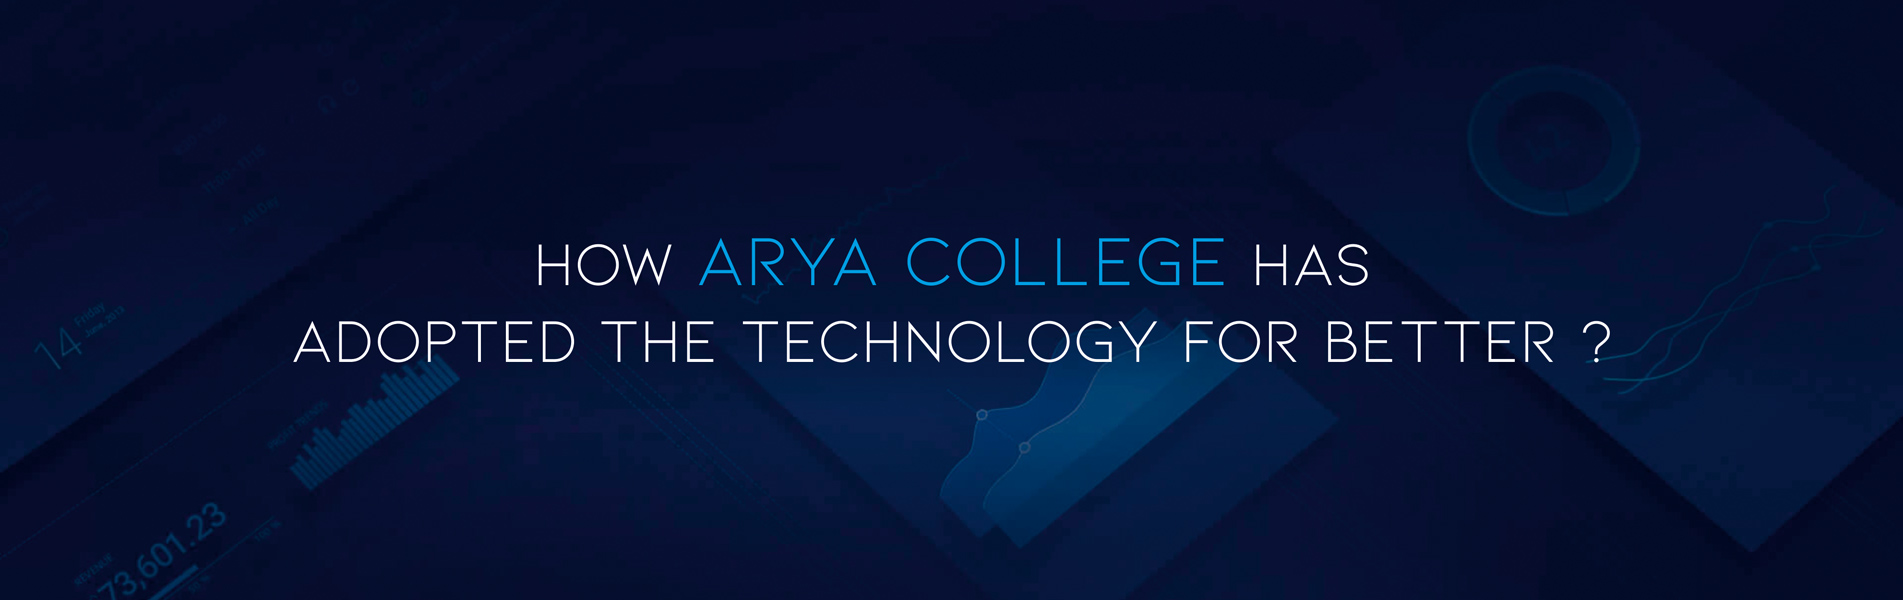 How-Arya-College-has-adopted-the-technology-for-better